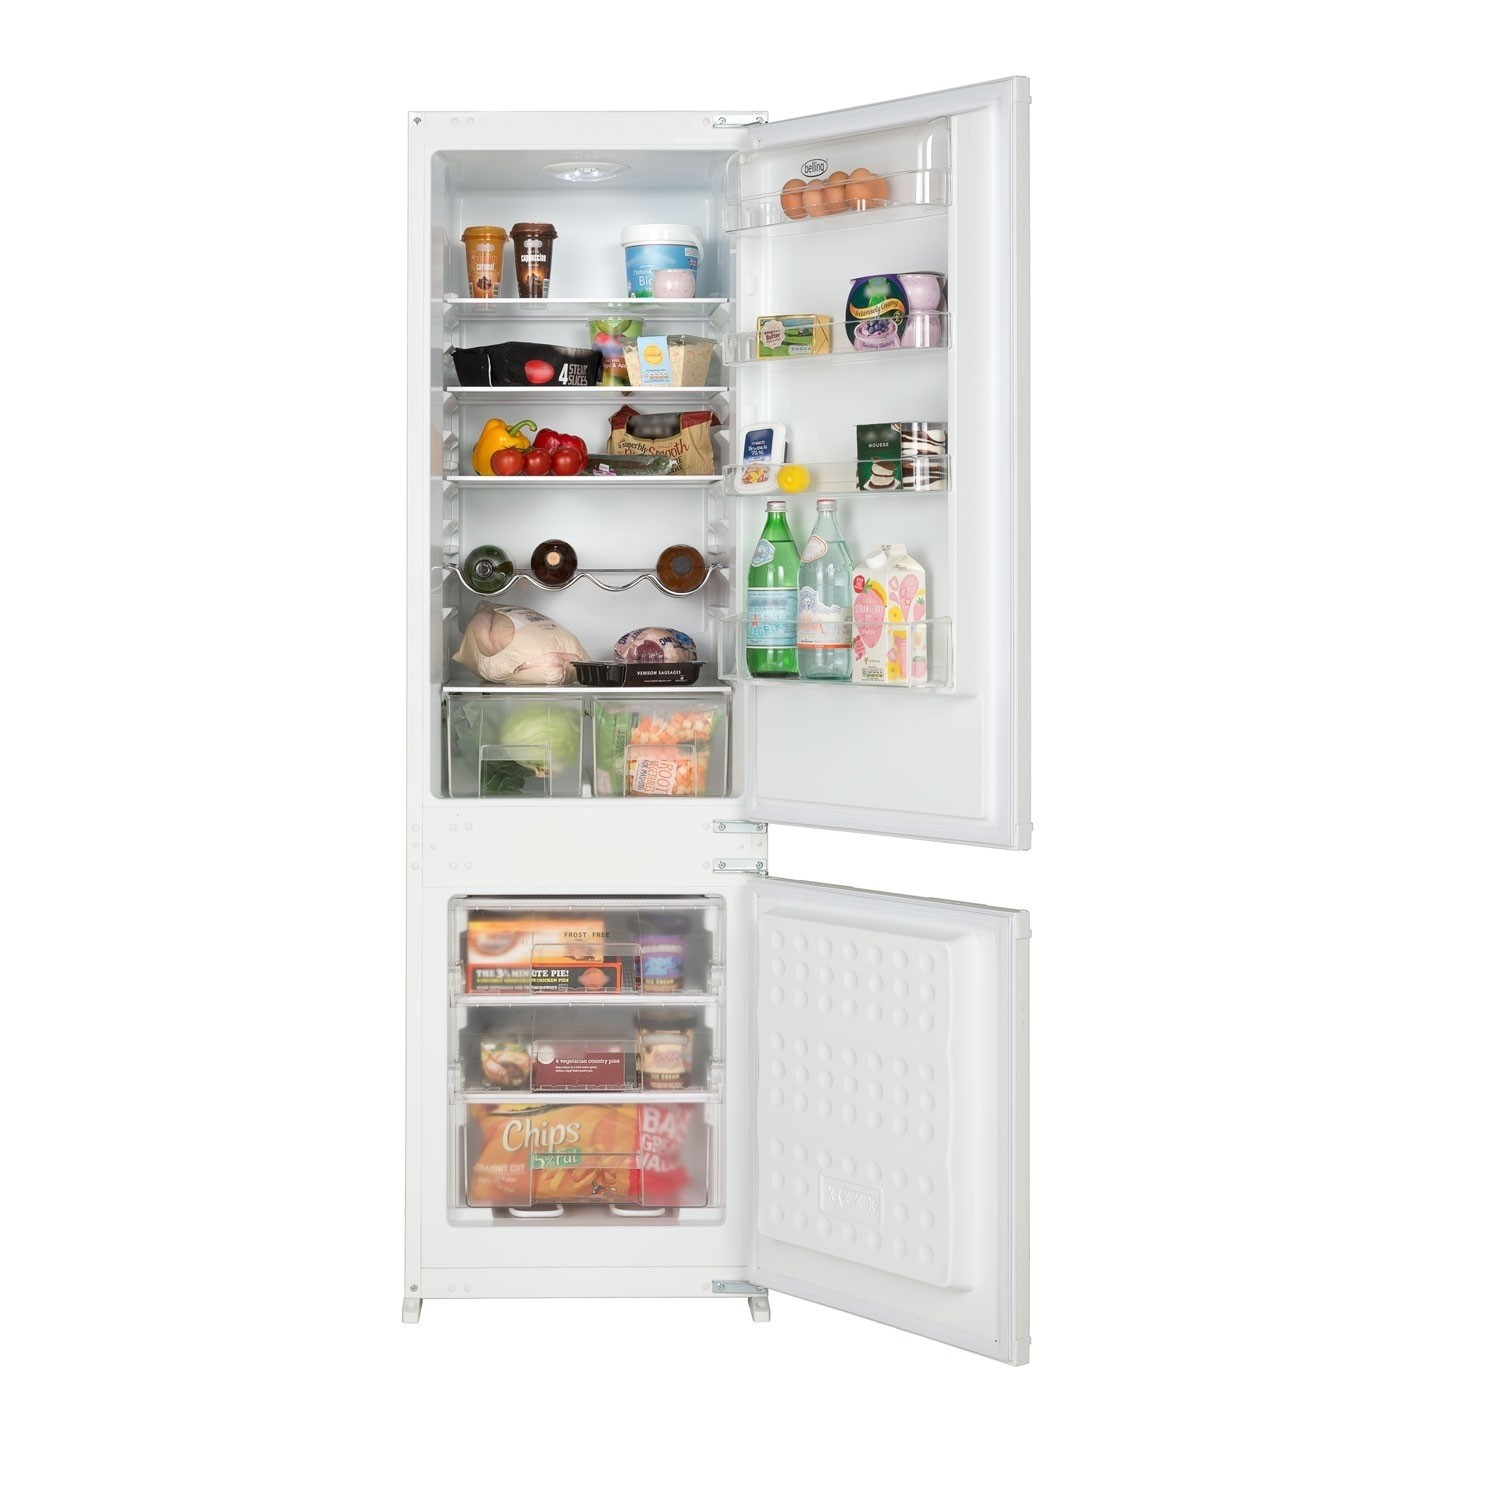 belling b7030ff 54cm wide frost free integrated upright fridge freezer white